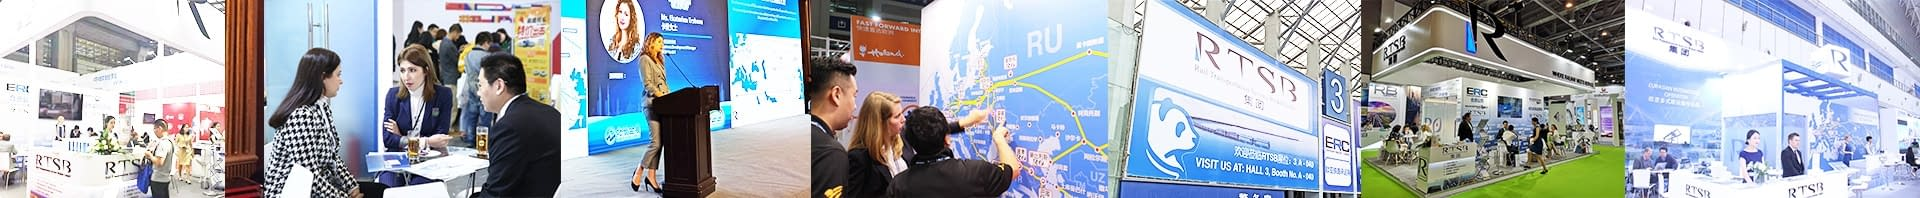 Pictures of RTSBs presence at exhibitions and congresses with employees speaking to customers and giving speeches